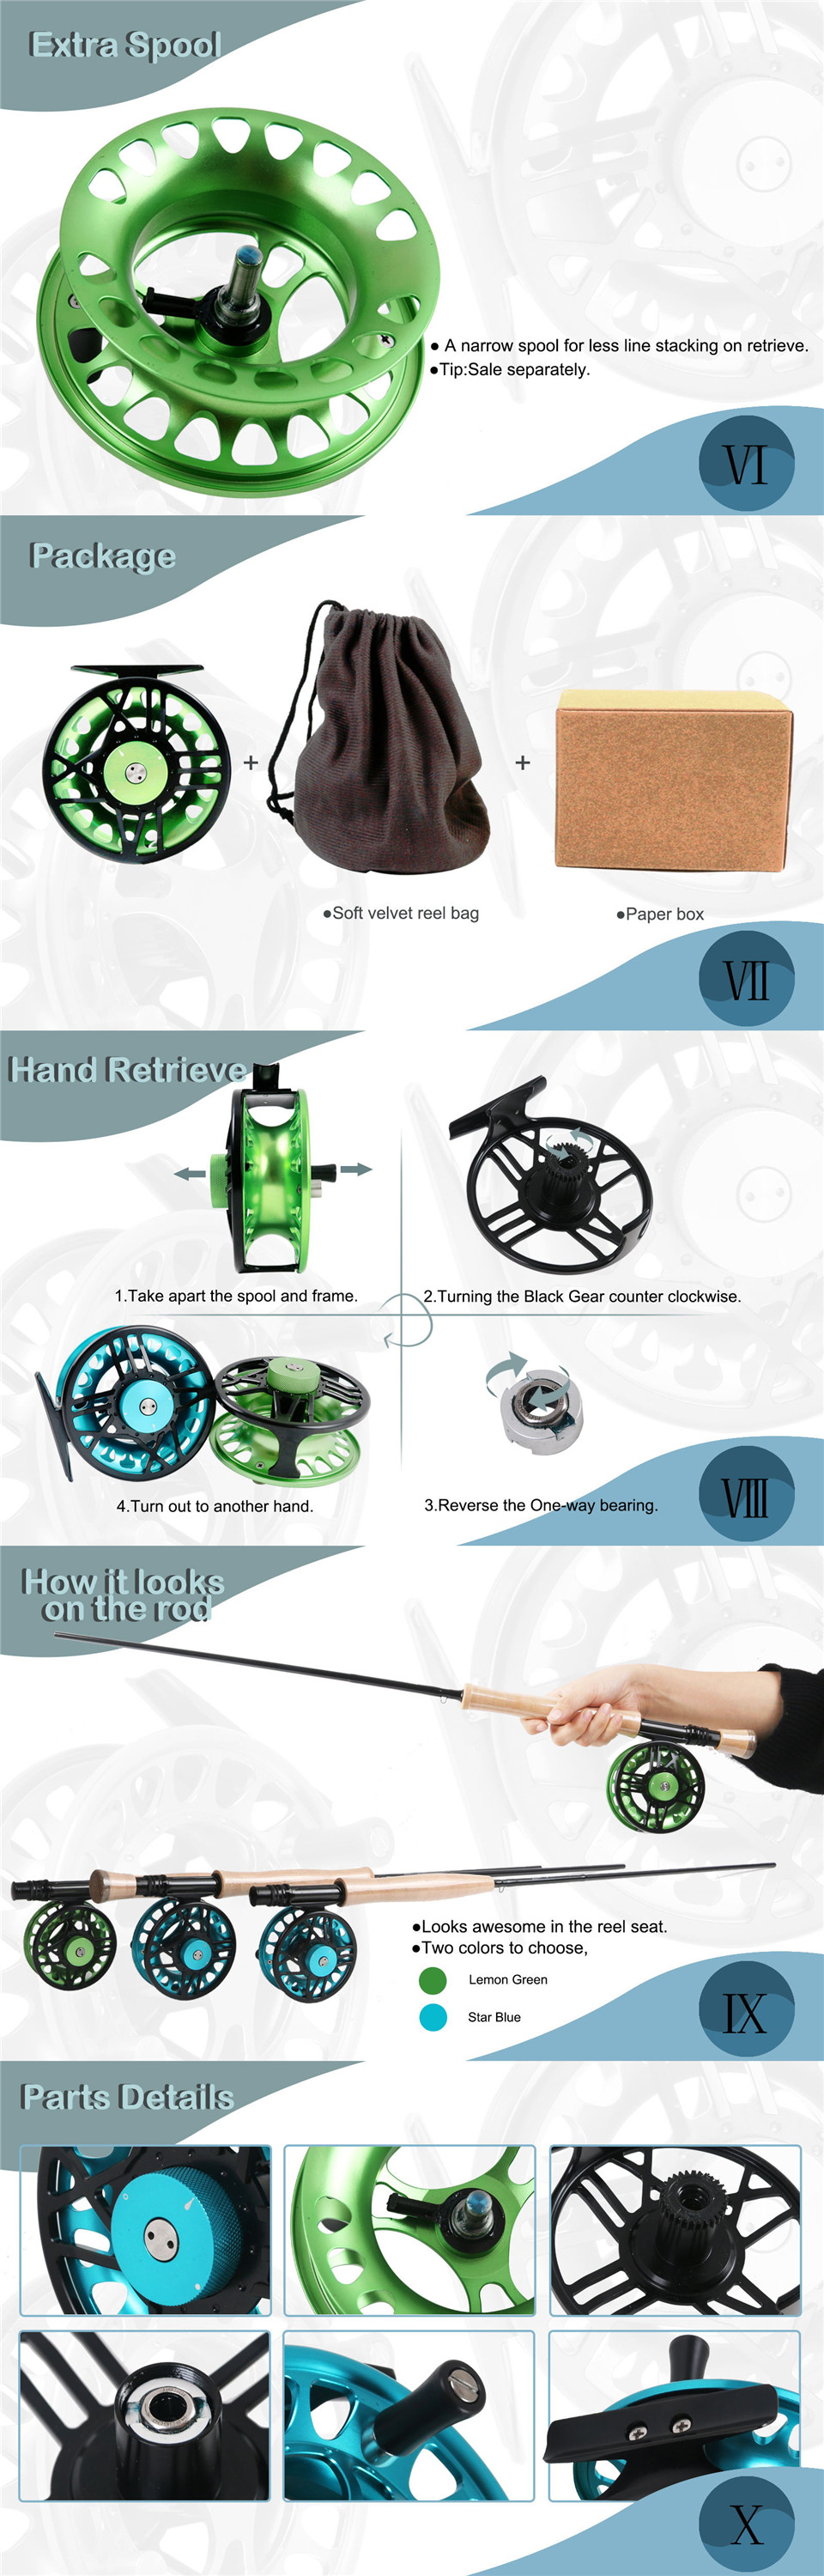 Maximumcatch TimeFly 5/6/7/8wt Fly Reel CNC Machined Cut Aluminum Teflon Disc Drag System Fly Fishing Reel Blue/Green Color 8